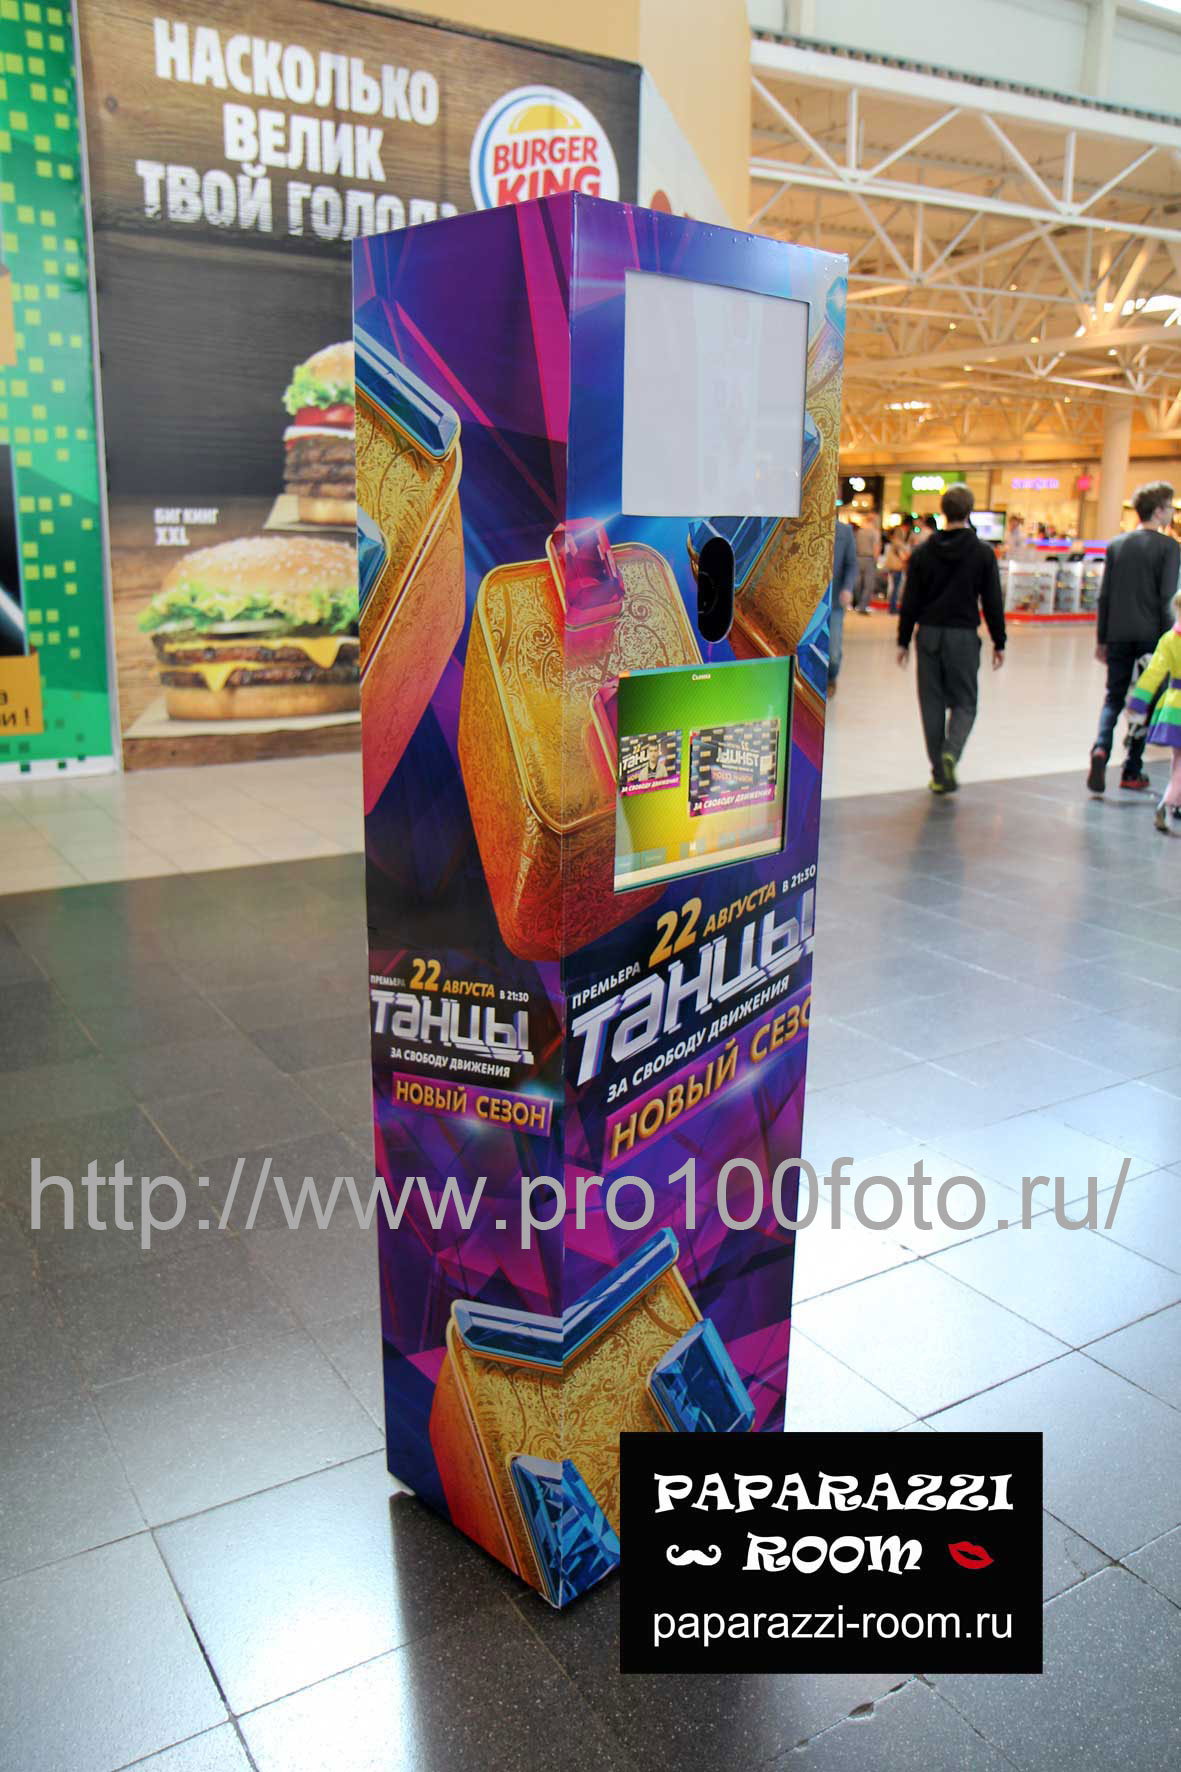 Фотобудка, фотостойка, фотокабинка, фототерминал, pro100foto, photo booth, photobooth